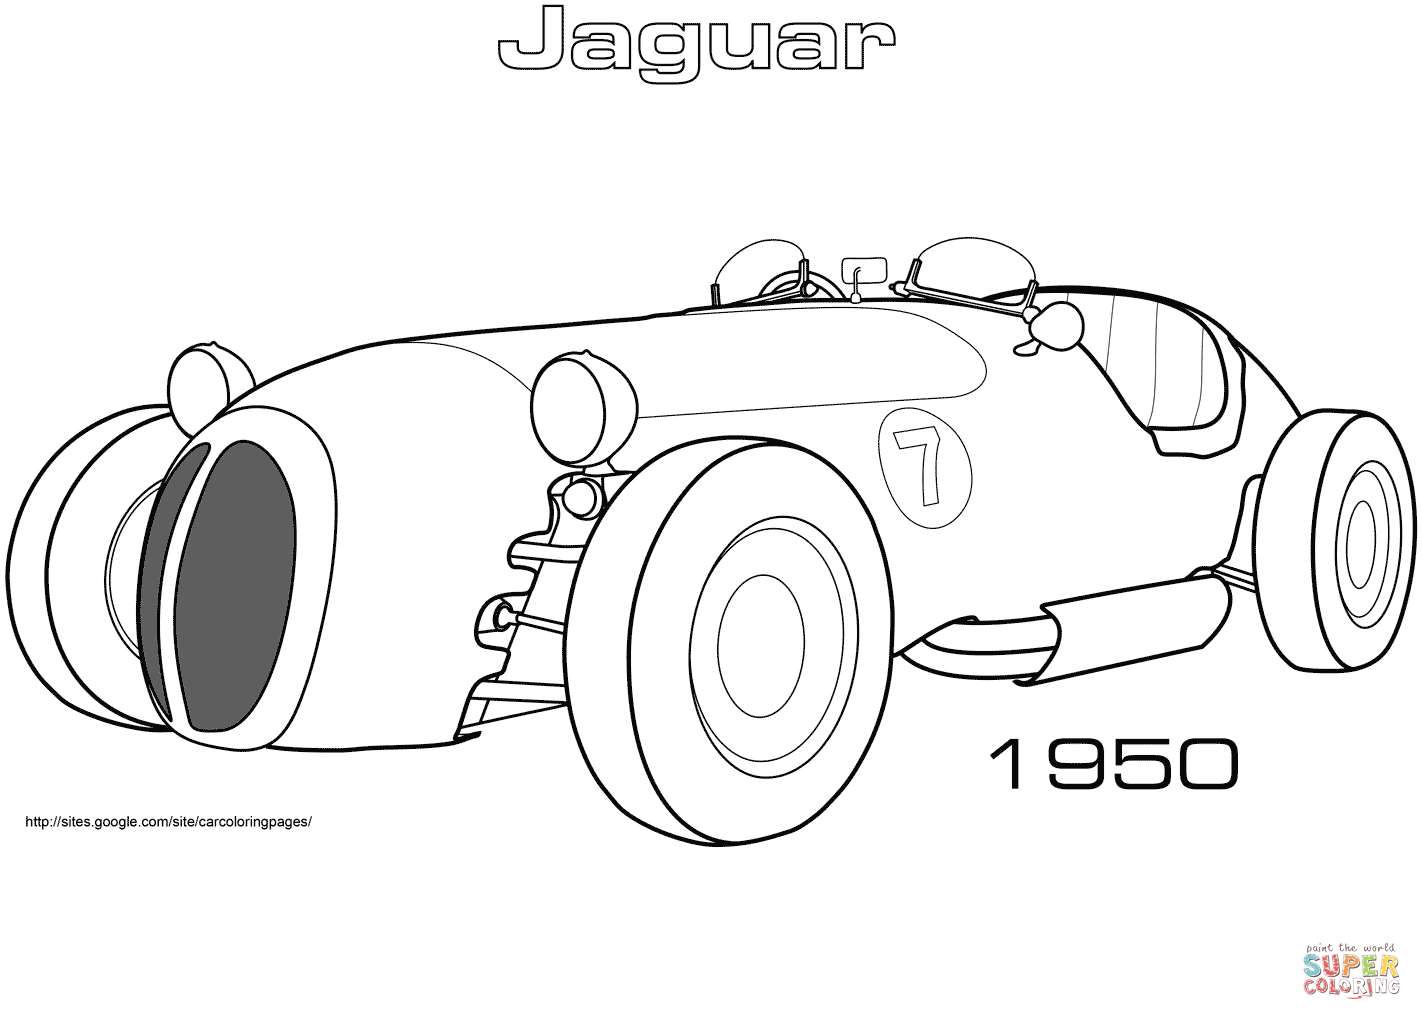 Jaguar Car Drawing At Getdrawings